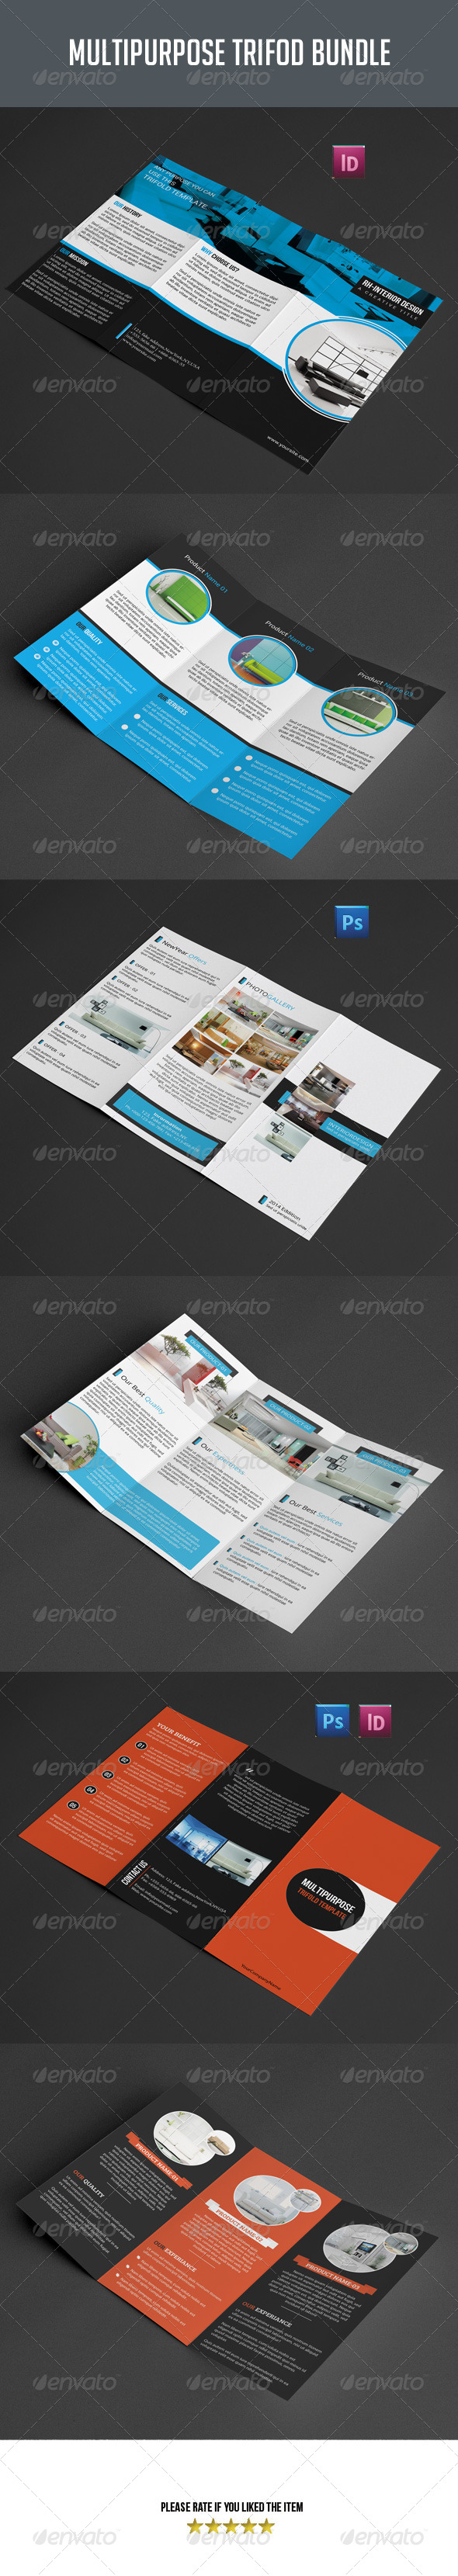 GraphicRiver 3 in 1 Multipurpose Trifold Brochure Bundle 8374249